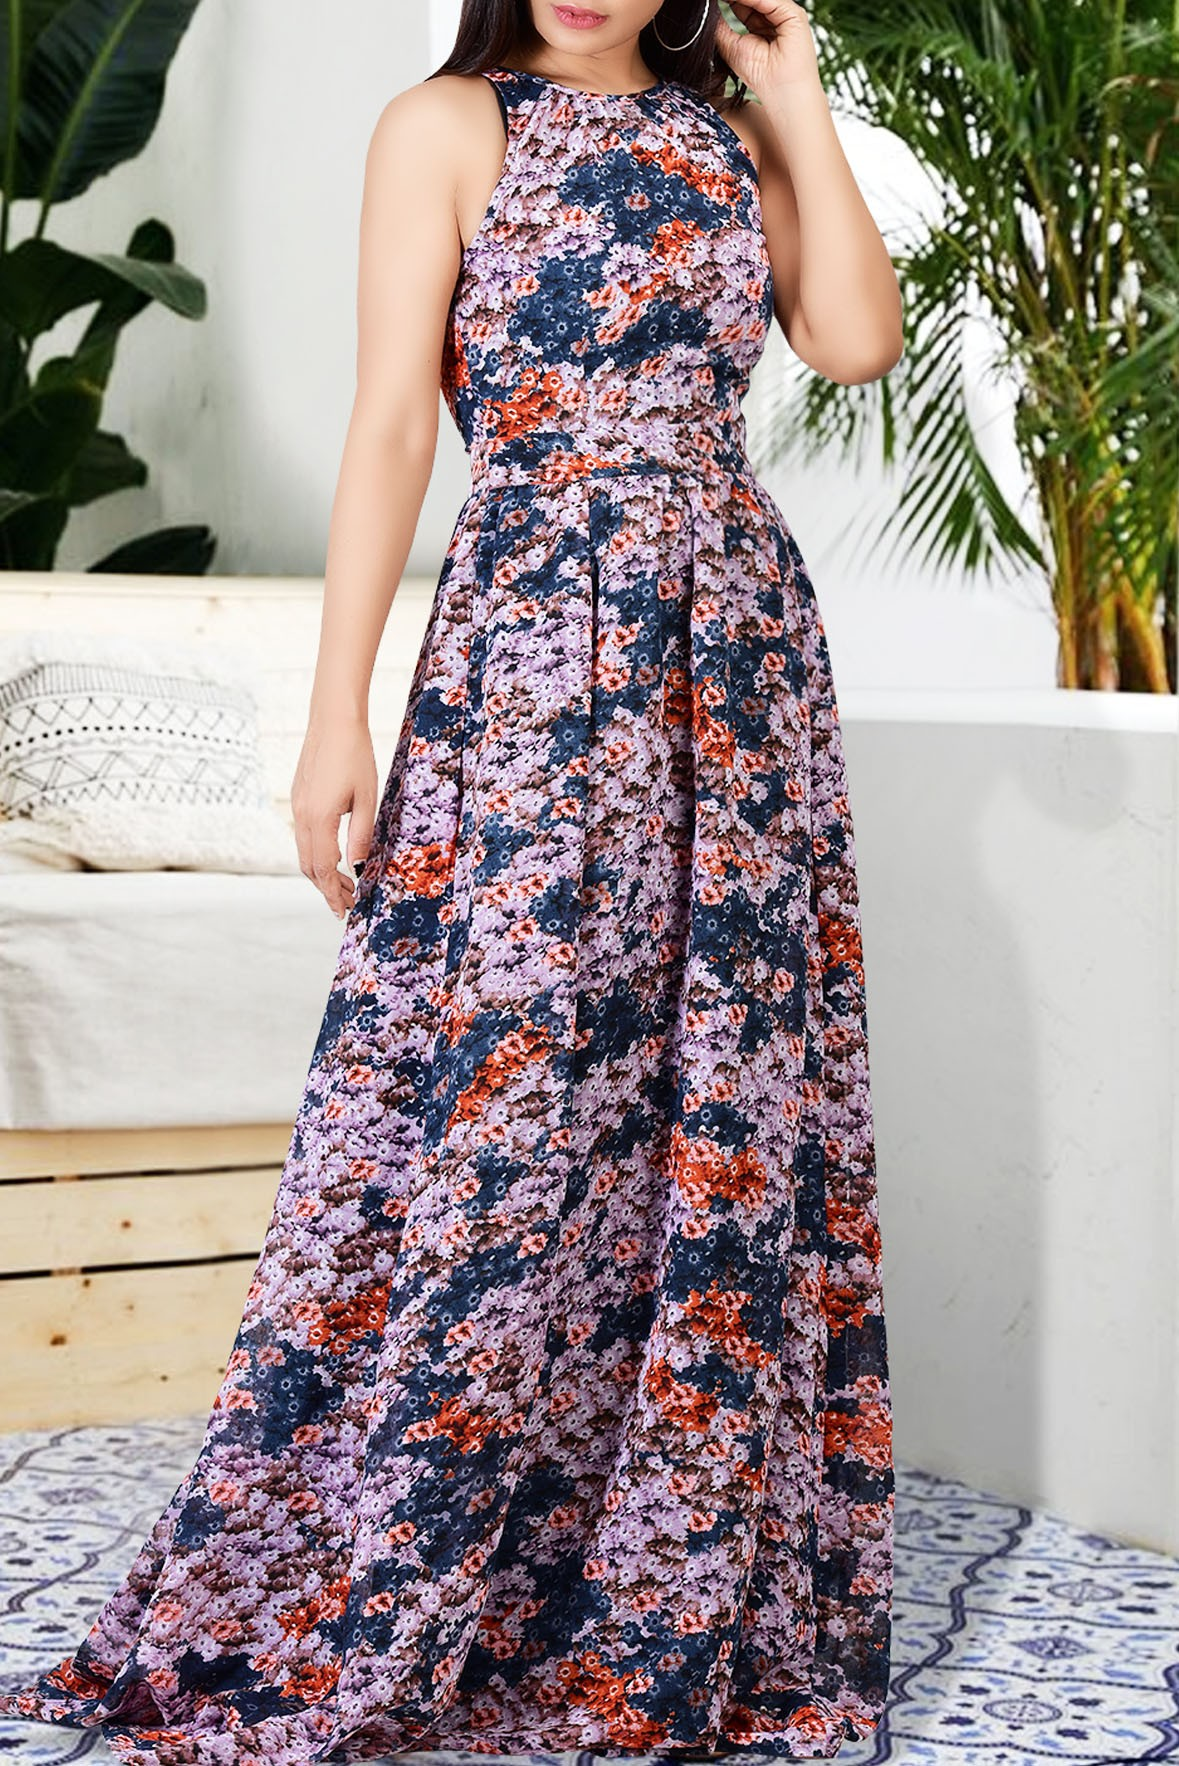 TBG Delight of my life cocktail maxi dress